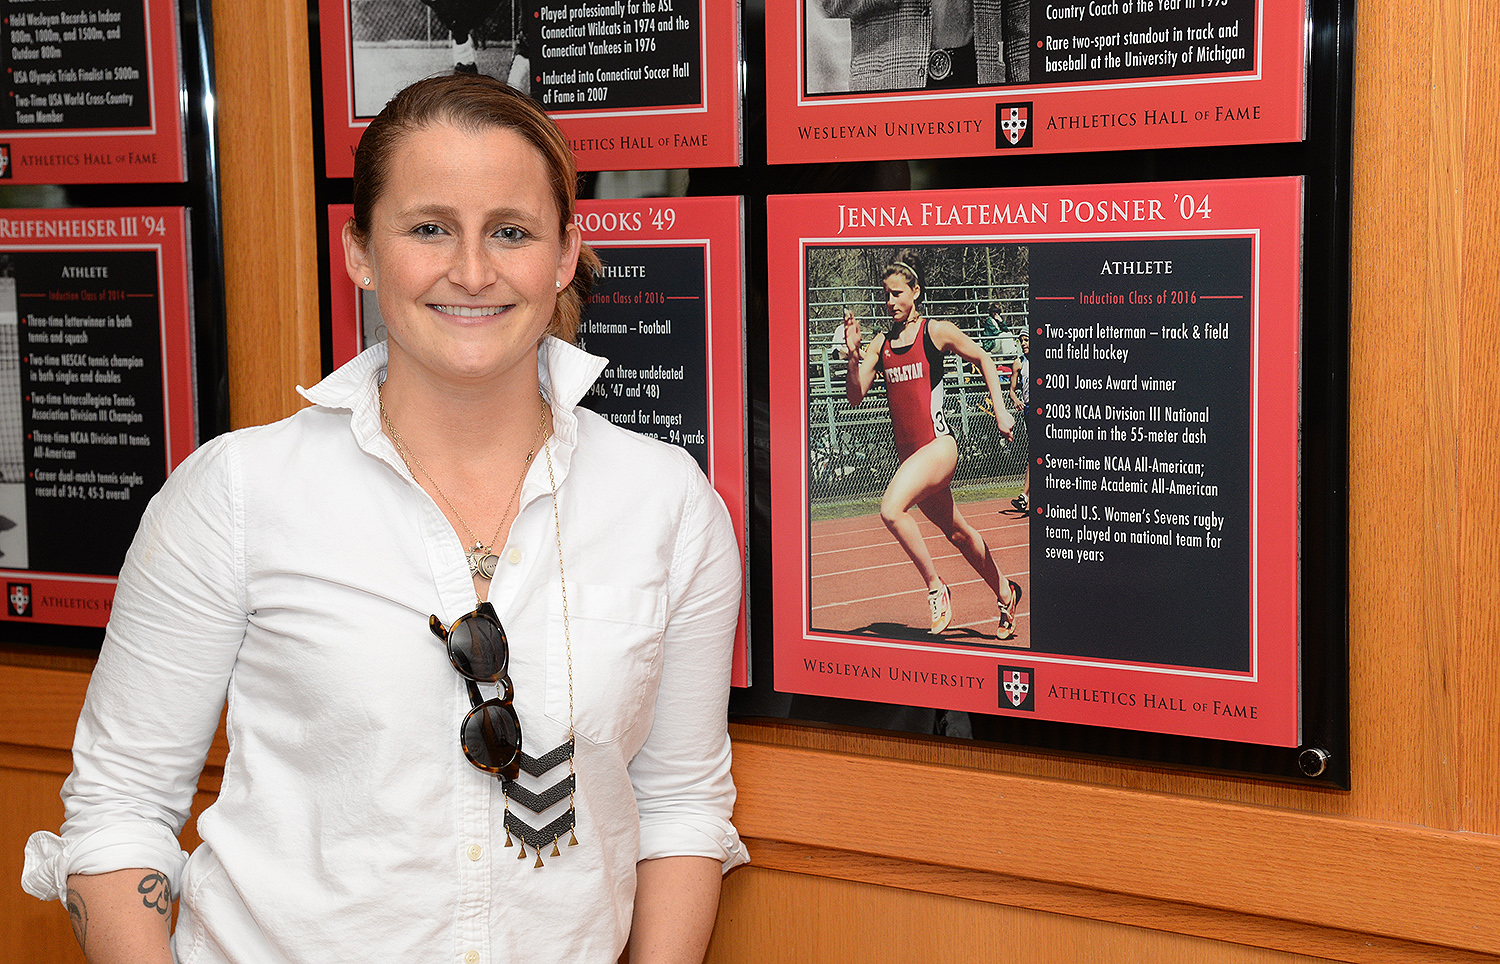 Jenna Flateman Posner '04, a 2003 NCAA National Champion, was an exceptional track athlete at Wesleyan, and also competed in field hockey for three years with the Cardinals before excelling in rugby following graduation. During her tenure at Wes, she set numerous records in track that still hold strong today. She is the indoor record holder in the 55-meter dash (:07.03) and the 200m (:25.71), and also a member of the 4x200m relay (1:44.74) and sprint medley relay (4:30.65) teams. Flateman Posner holds the fastest outdoor times in the 100m (:11.90) and the 200m (:24.88) as well, while also holding the record in the sprint medley relay (4:21.78). She piled up numerous accolades throughout her career, most notably the 2003 NCAA national title in the 55-meter dash, while also winning numerous New England Division III, NESCAC and ECAC titles, and earning several NCAA All-American, All-New England Division III, All-NESCAC and All-ECAC honors. Following her storied career, Flateman Posner competed in women's rugby and became a star on the USA Women's Sevens team.